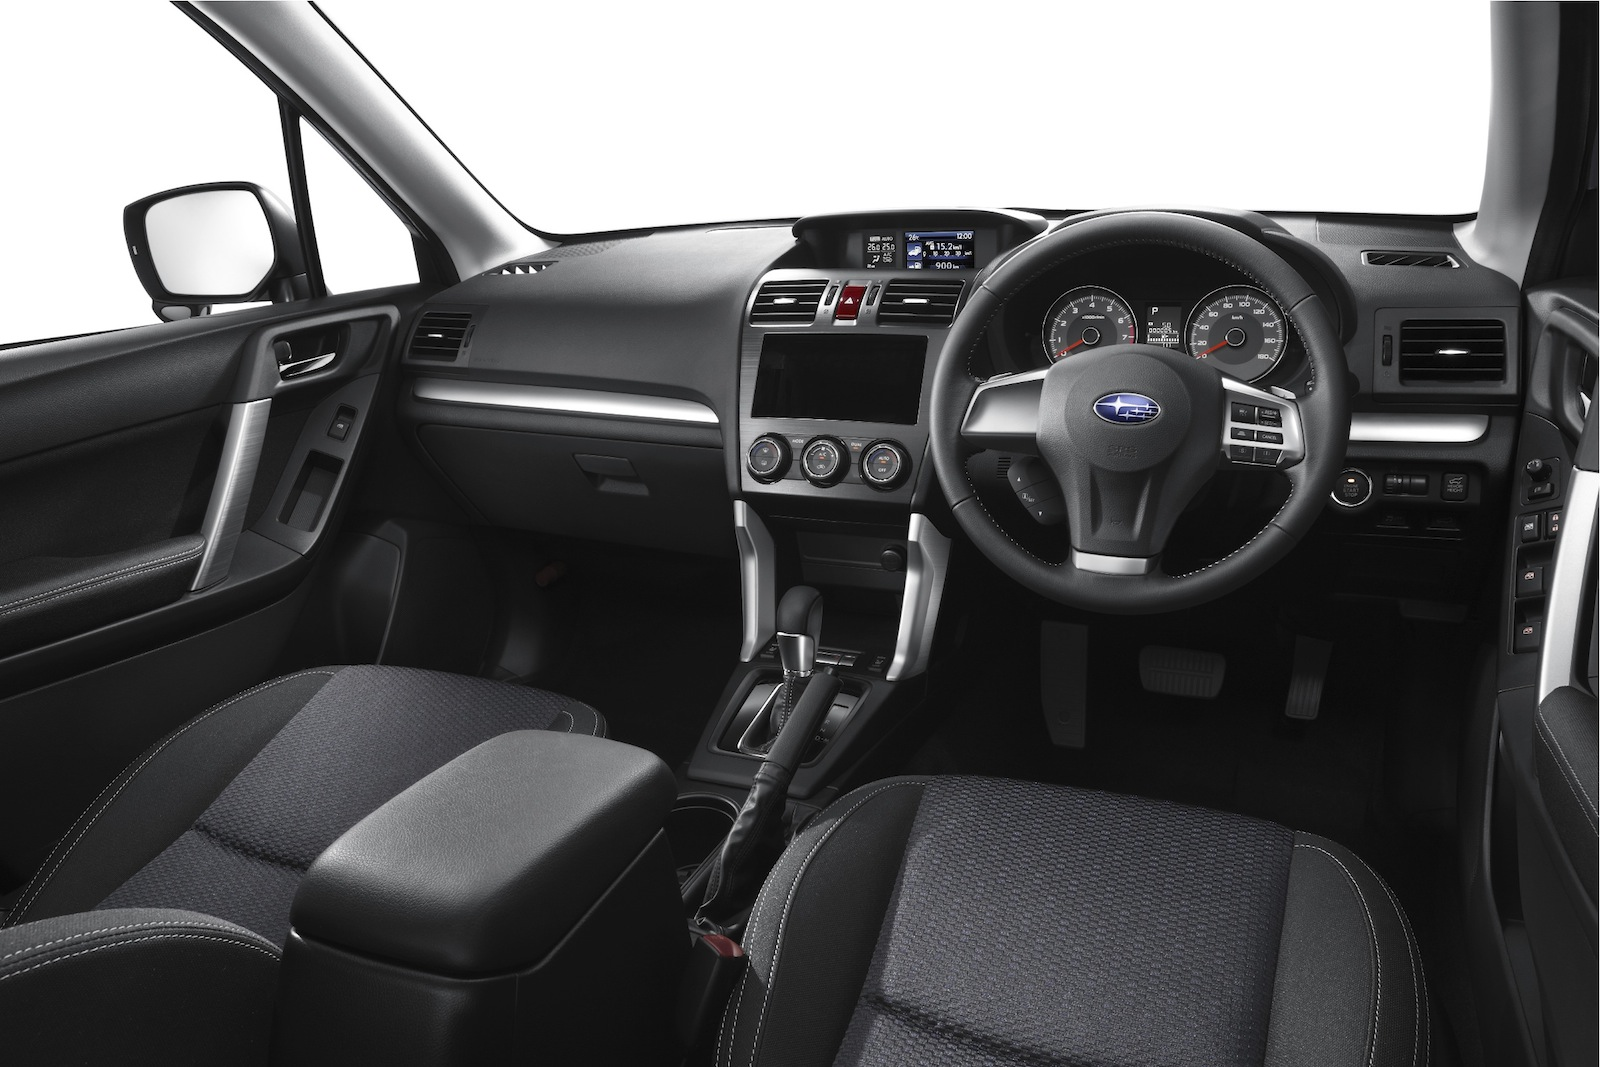 Subaru Forester Off Road >> 2013 Subaru Forester interior revealed in full image gallery - photos | CarAdvice